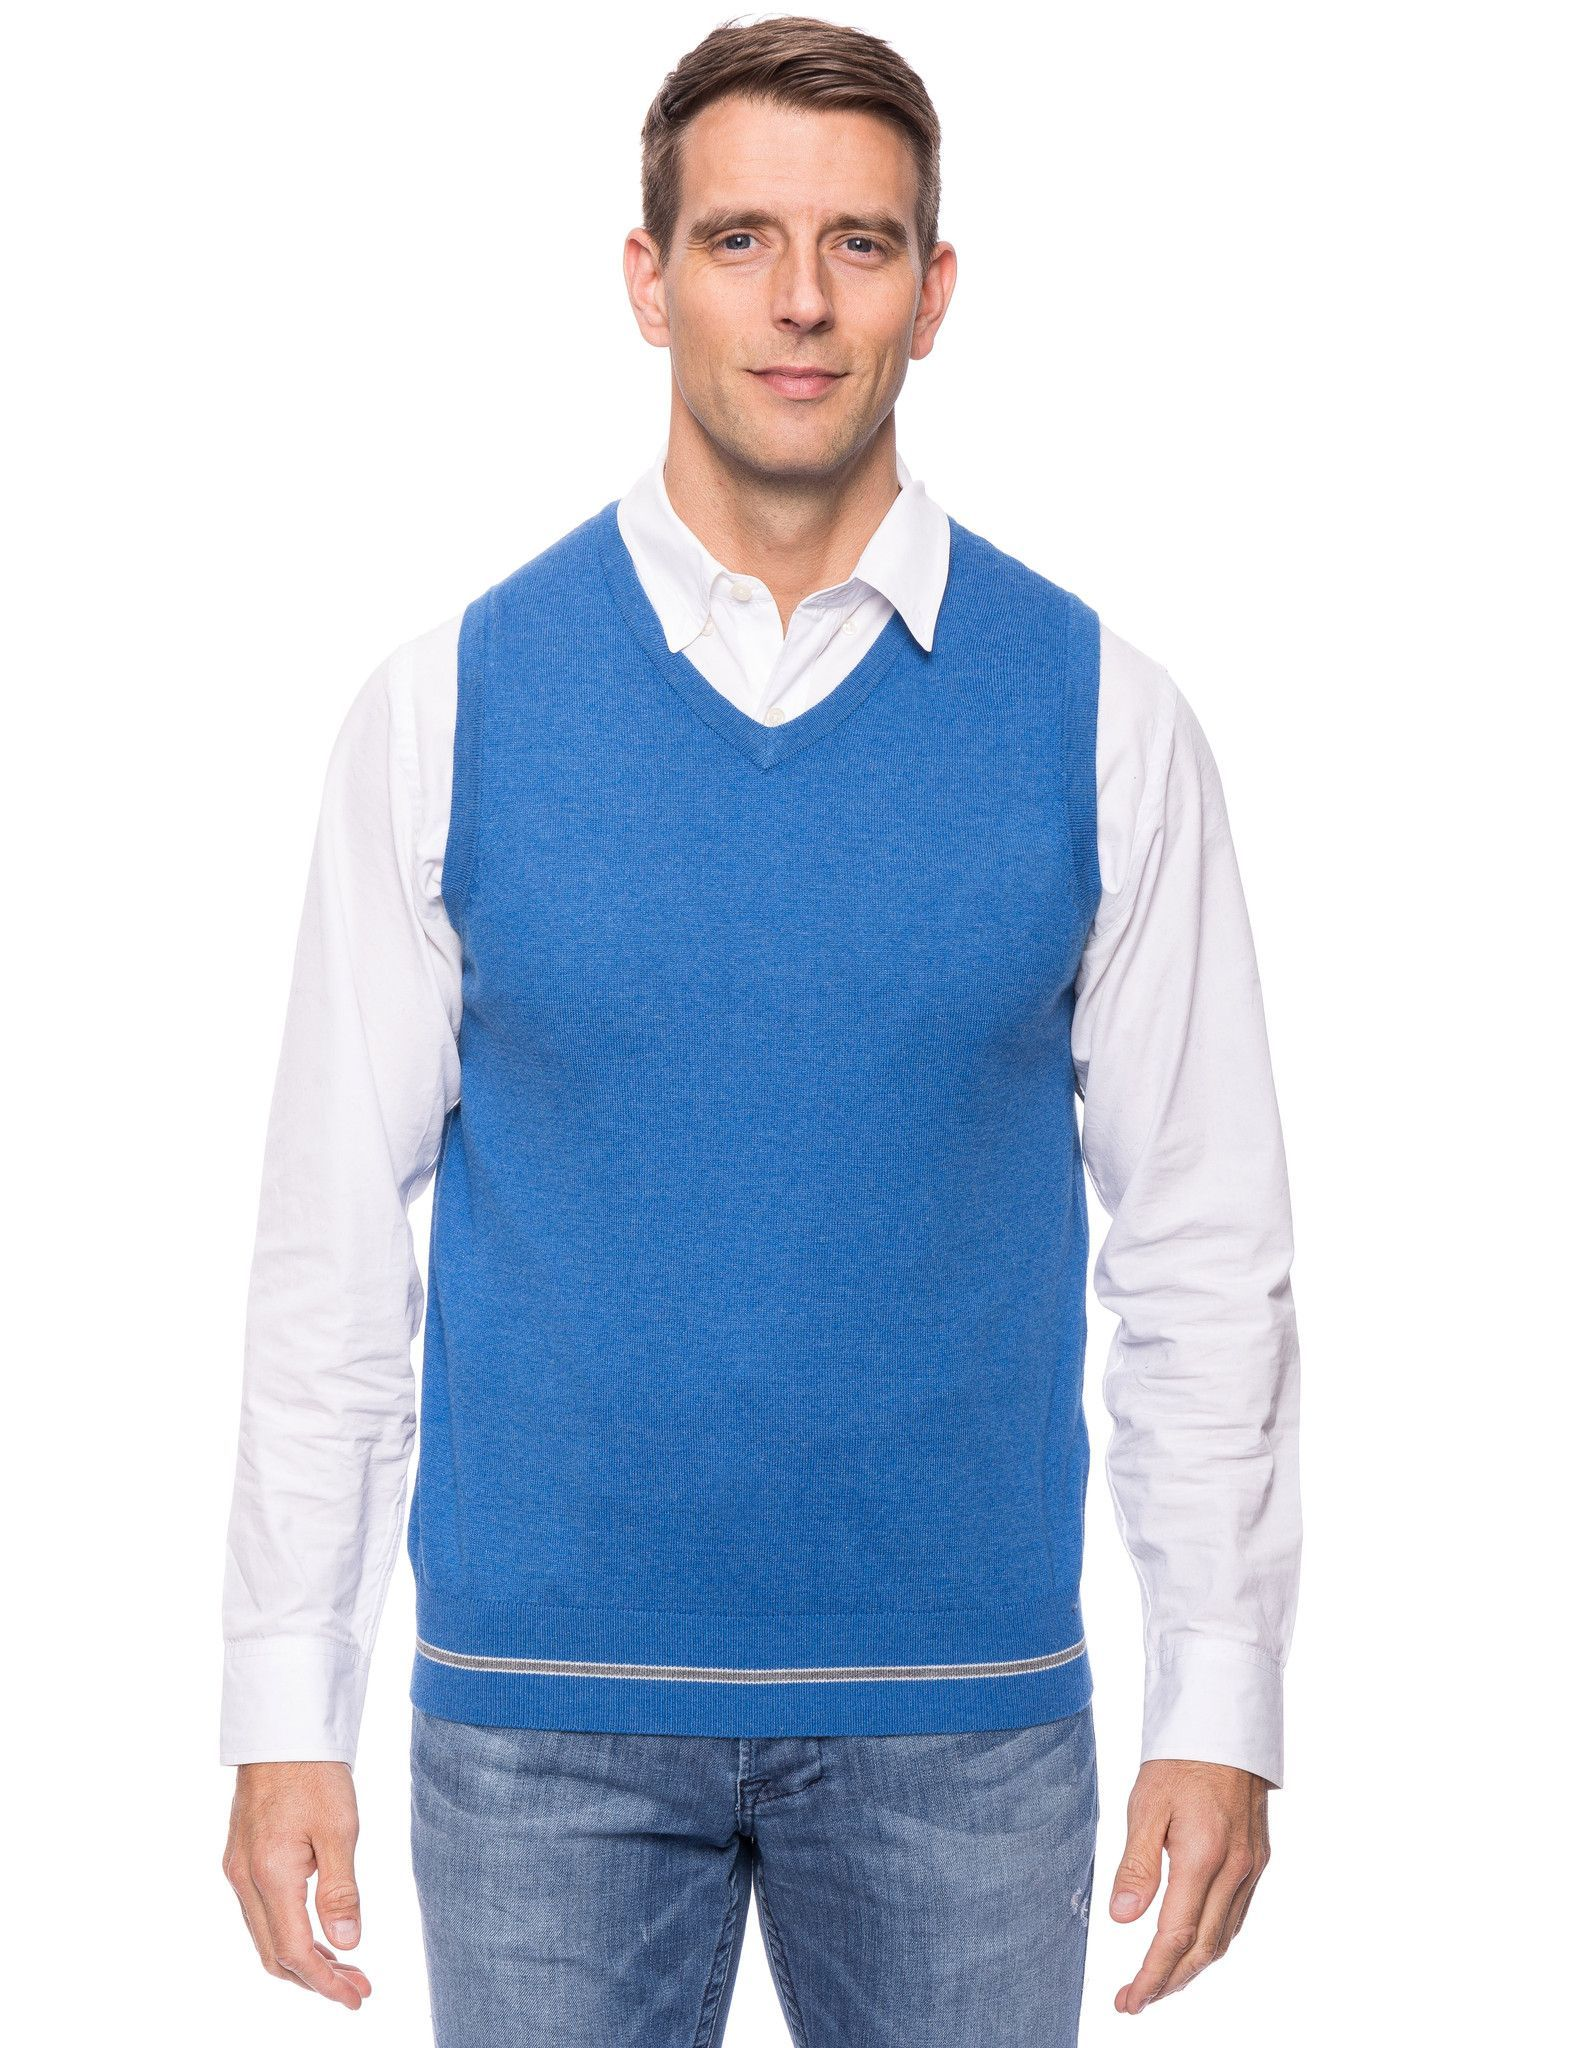 Tocco Reale Gift Packaged Men's Cashmere Blend Sweater Vest ...